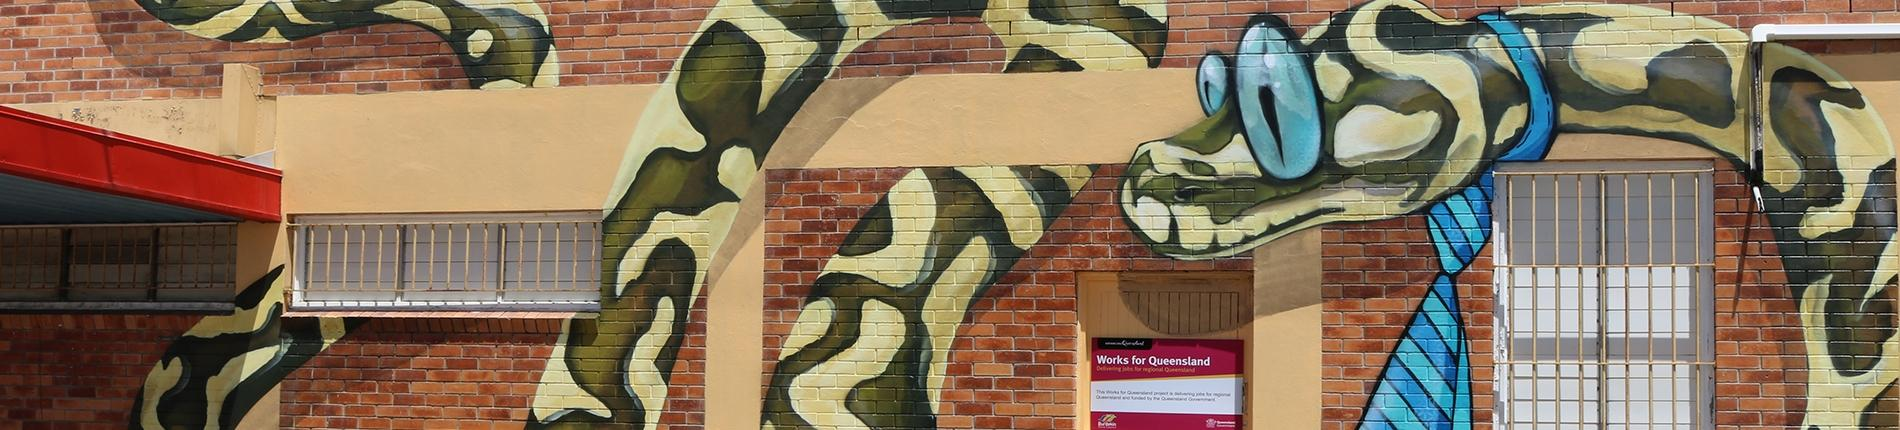 Street art, mural, snake, Works For Queensland